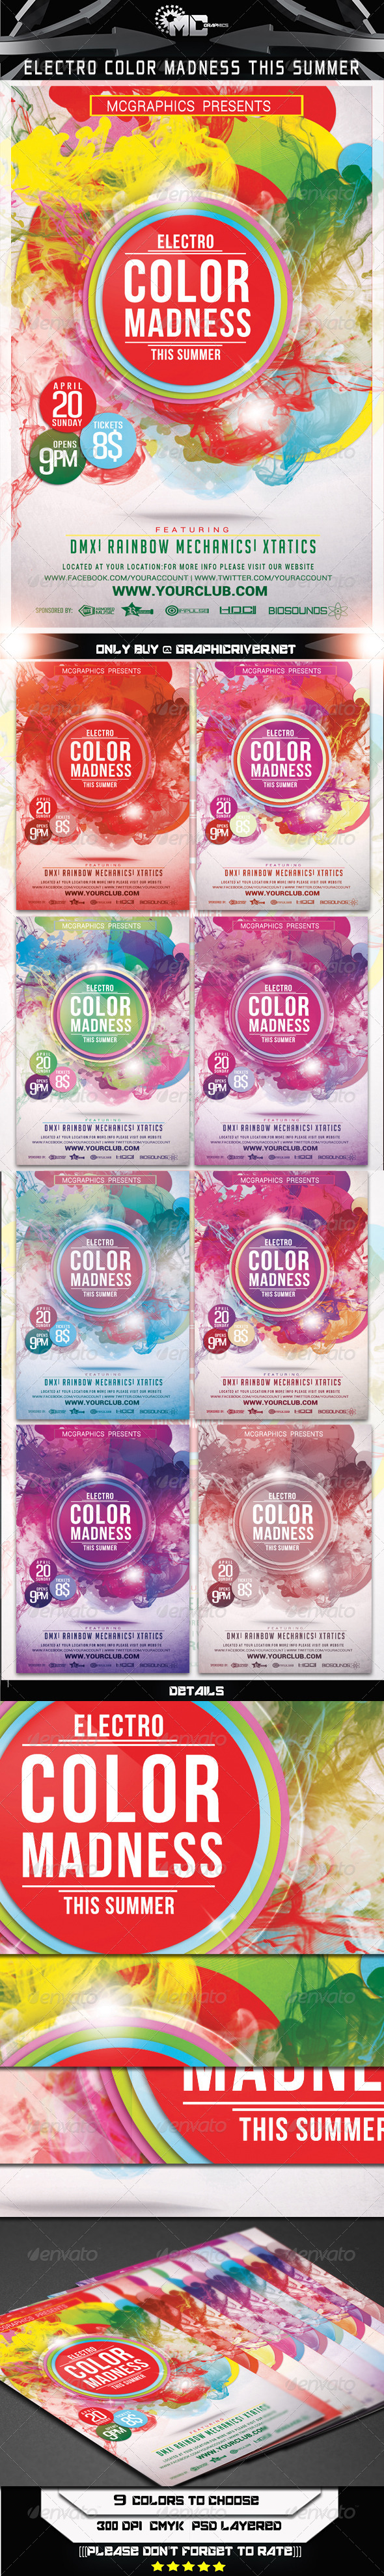 Electro Color Madness This Summer Flyer Template - Clubs & Parties Events